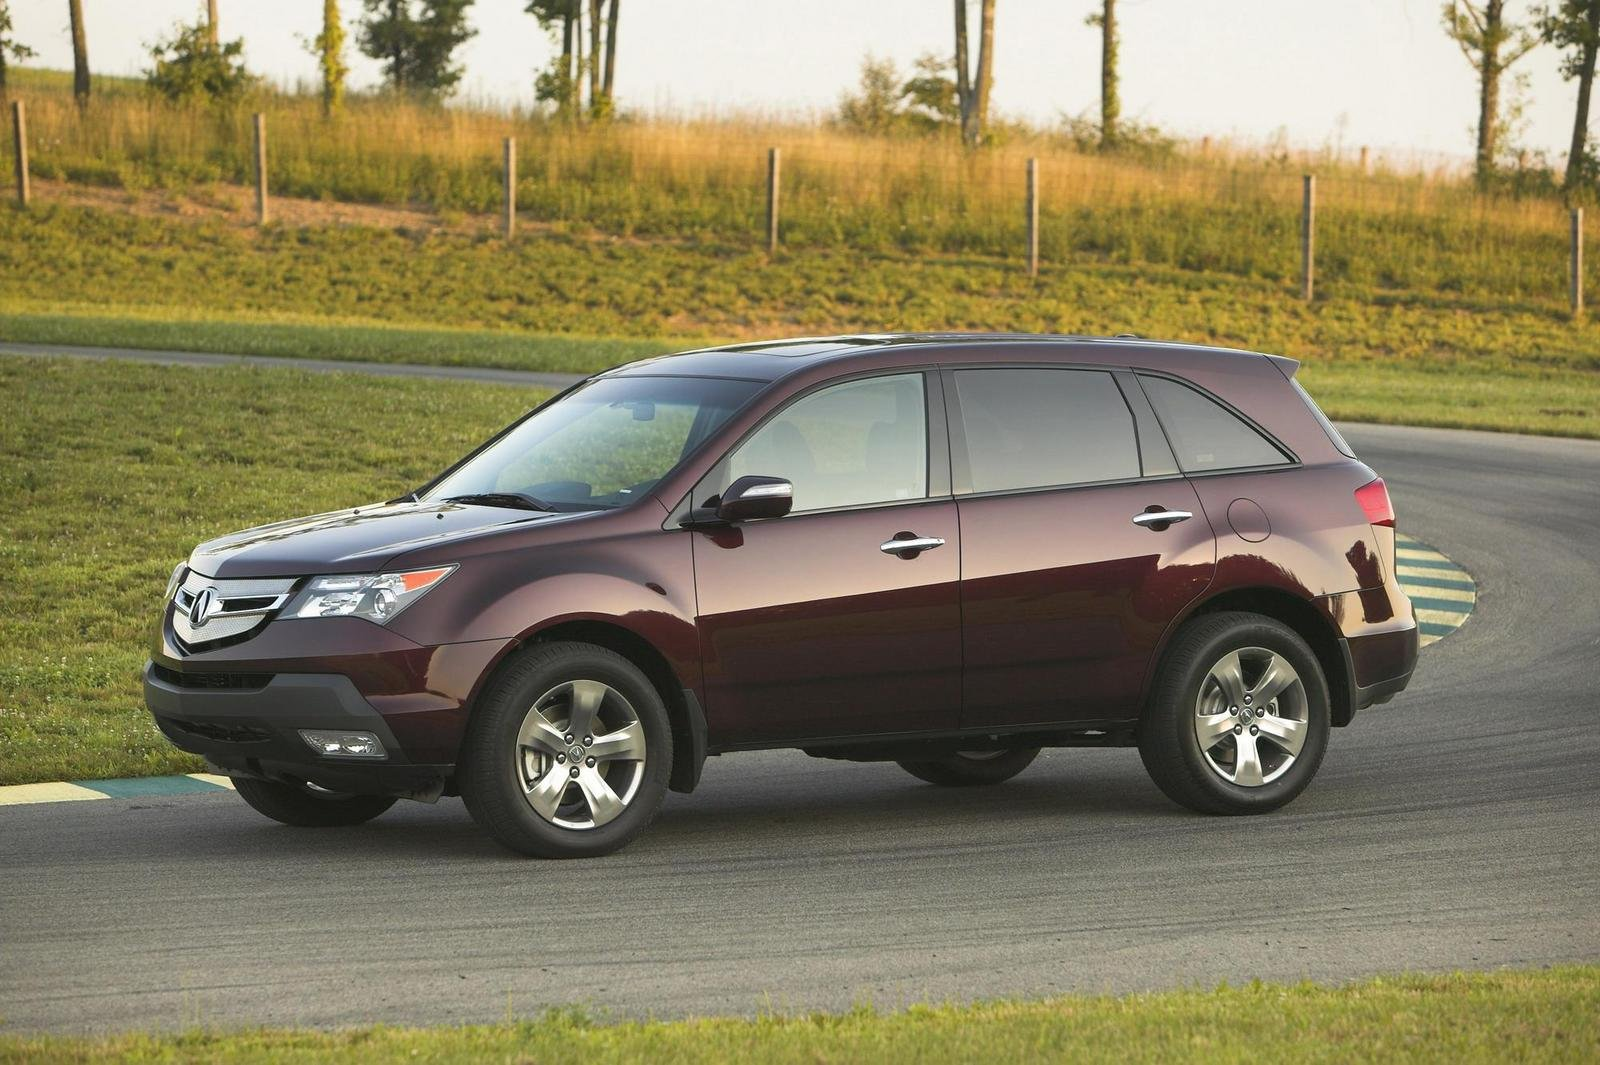 2009 acura mdx picture 299845 car review top speed. Black Bedroom Furniture Sets. Home Design Ideas